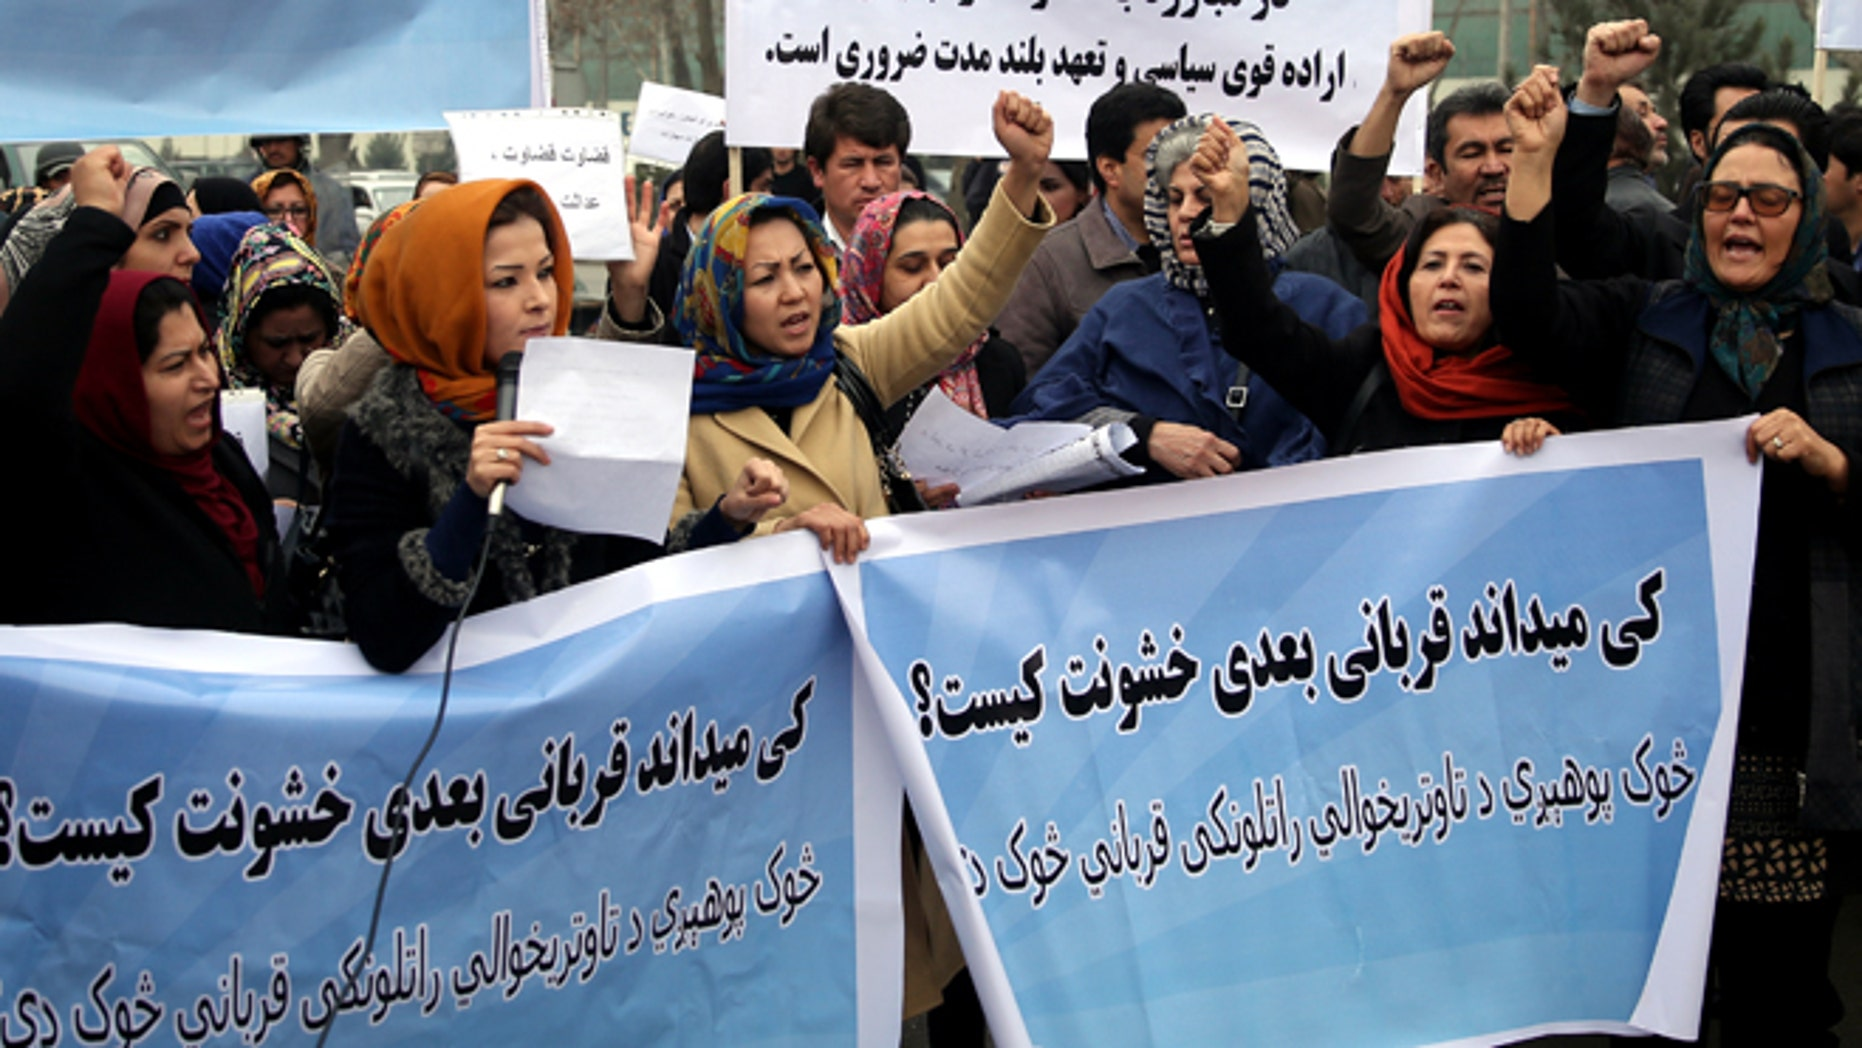 """Feb. 23, 2015: Afghanistan civil society activists participate in a demonstration to protest the increasing violence against women in their country, in front of the High Court in Kabul, Afghanistan. Writing on the posters reads: """"Who knows who will be the next victim of violence?,"""" """"We want the rapists to receive punishment,"""" and """"to fight against violence we need a strong decision."""""""